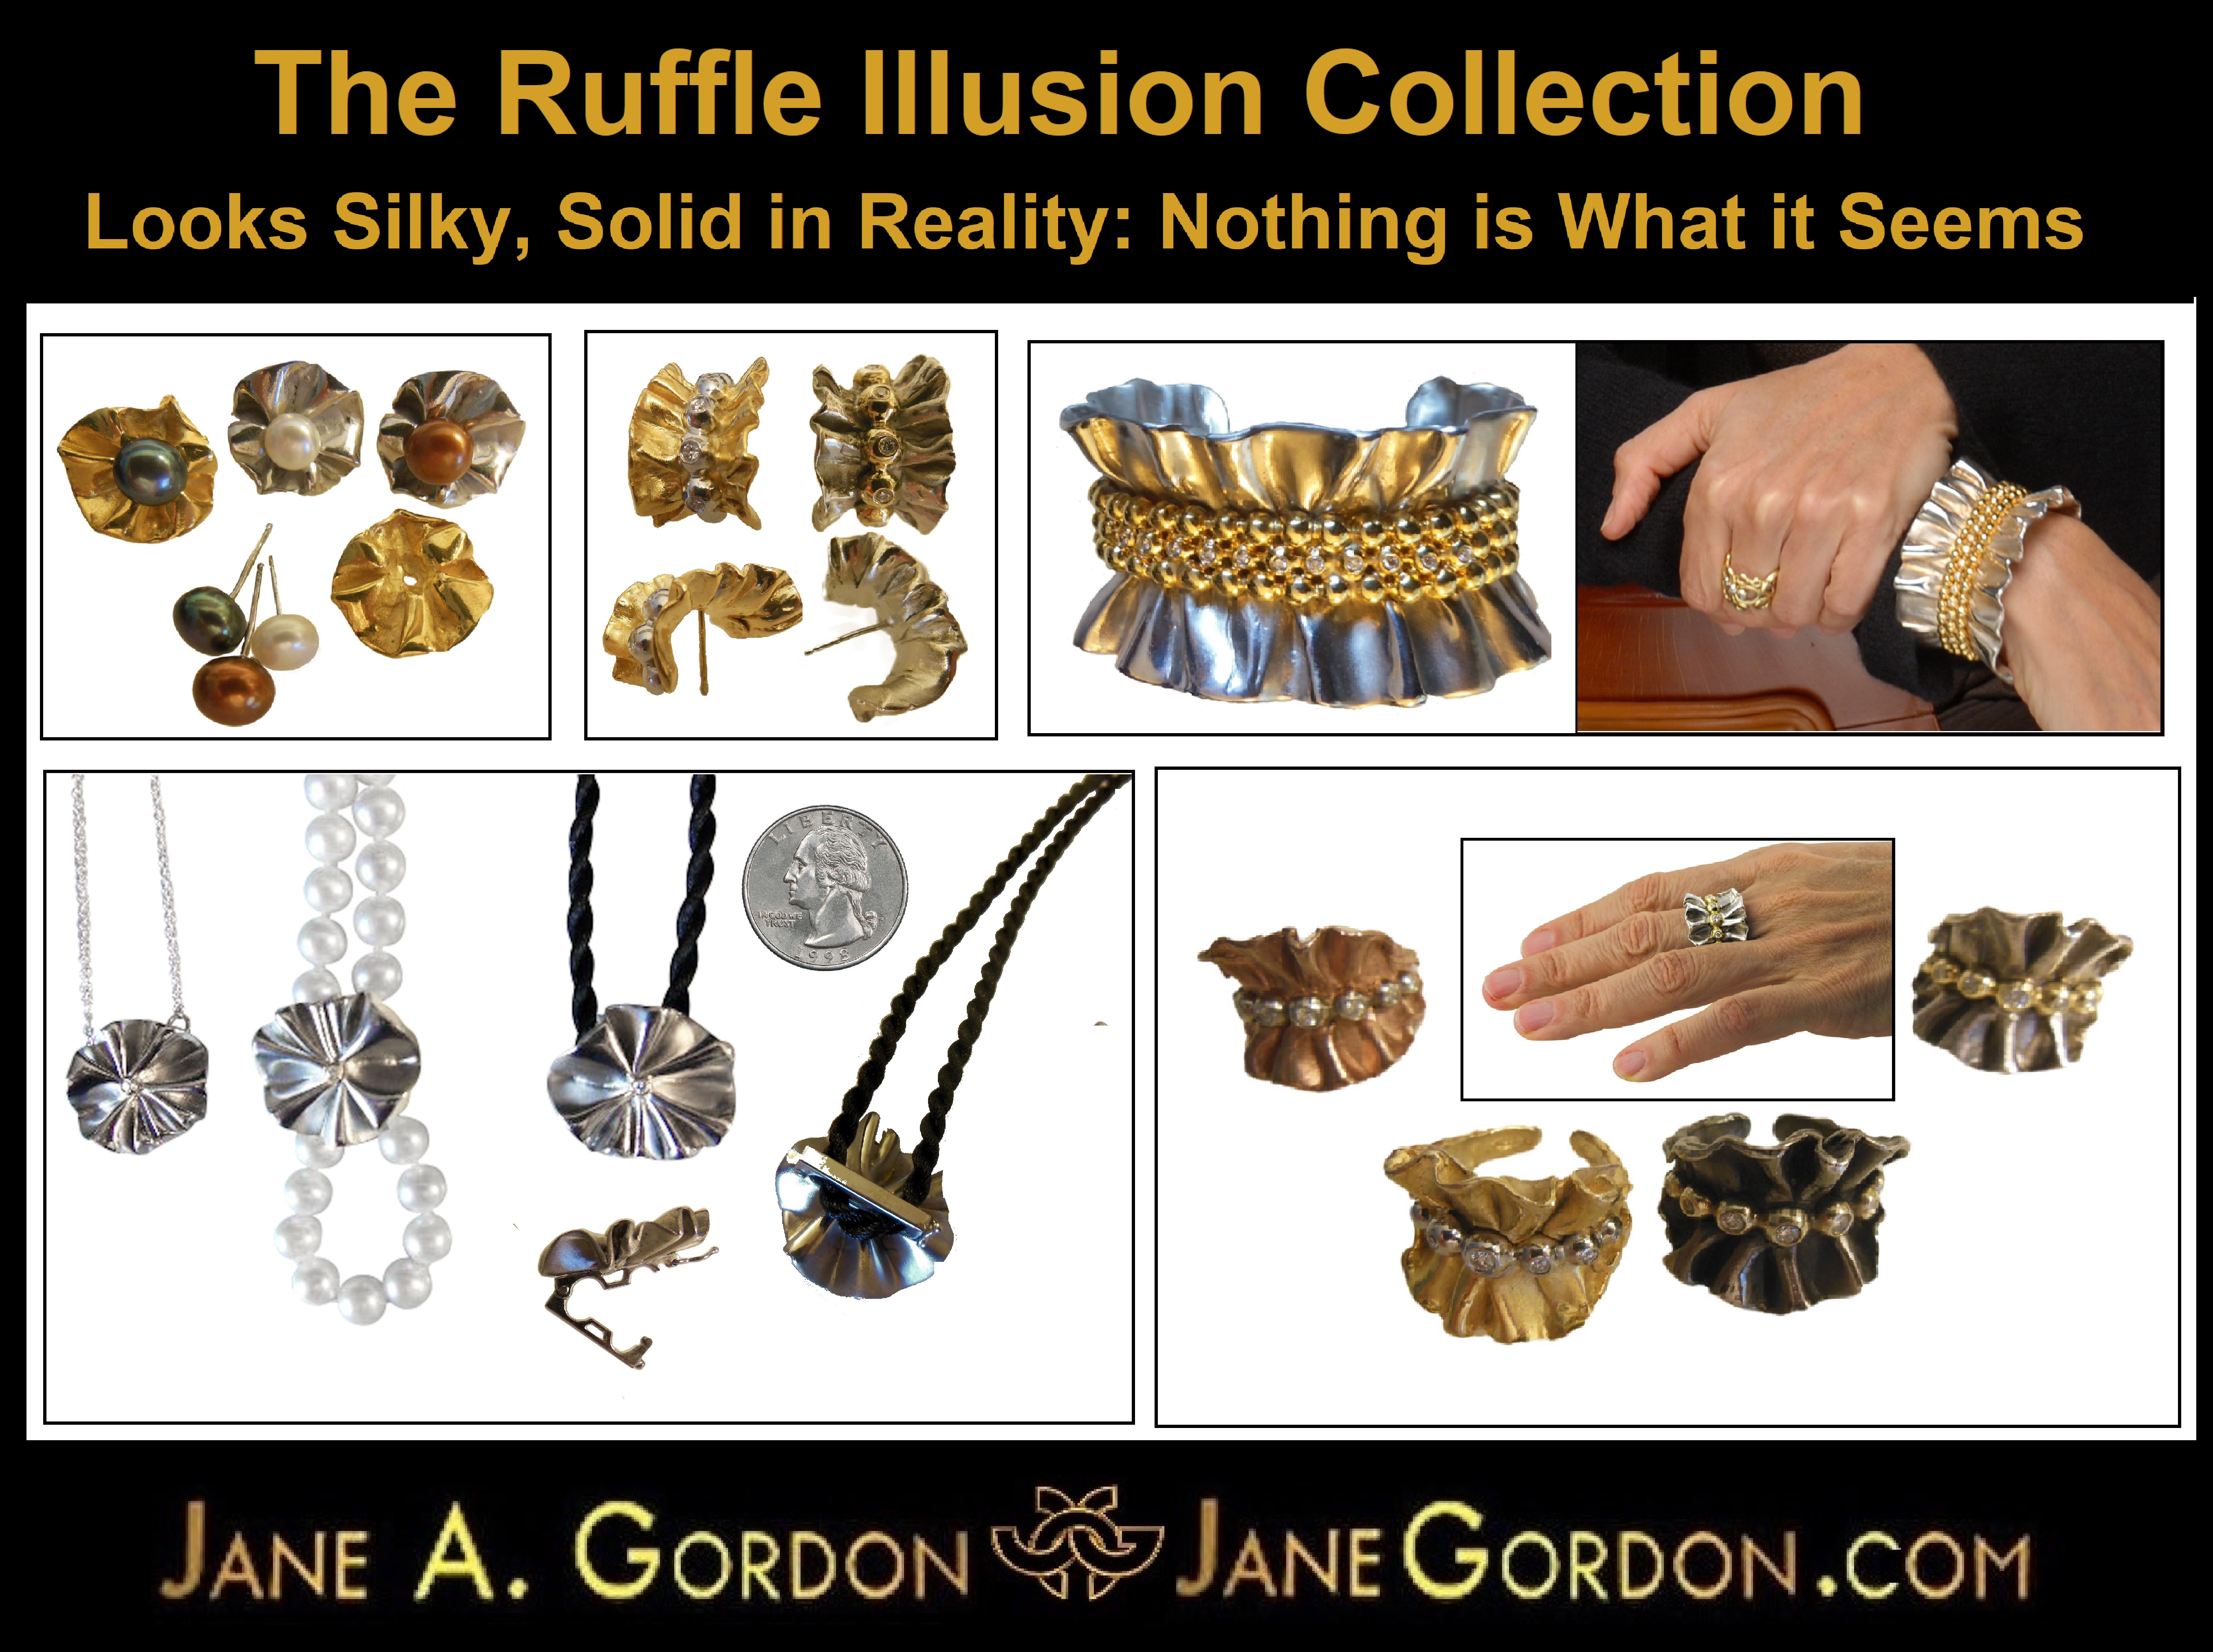 Ruffle Collection - Life is Illusion. When heart and mind is open, truth and light can enter. Jane Gordon Jewelry